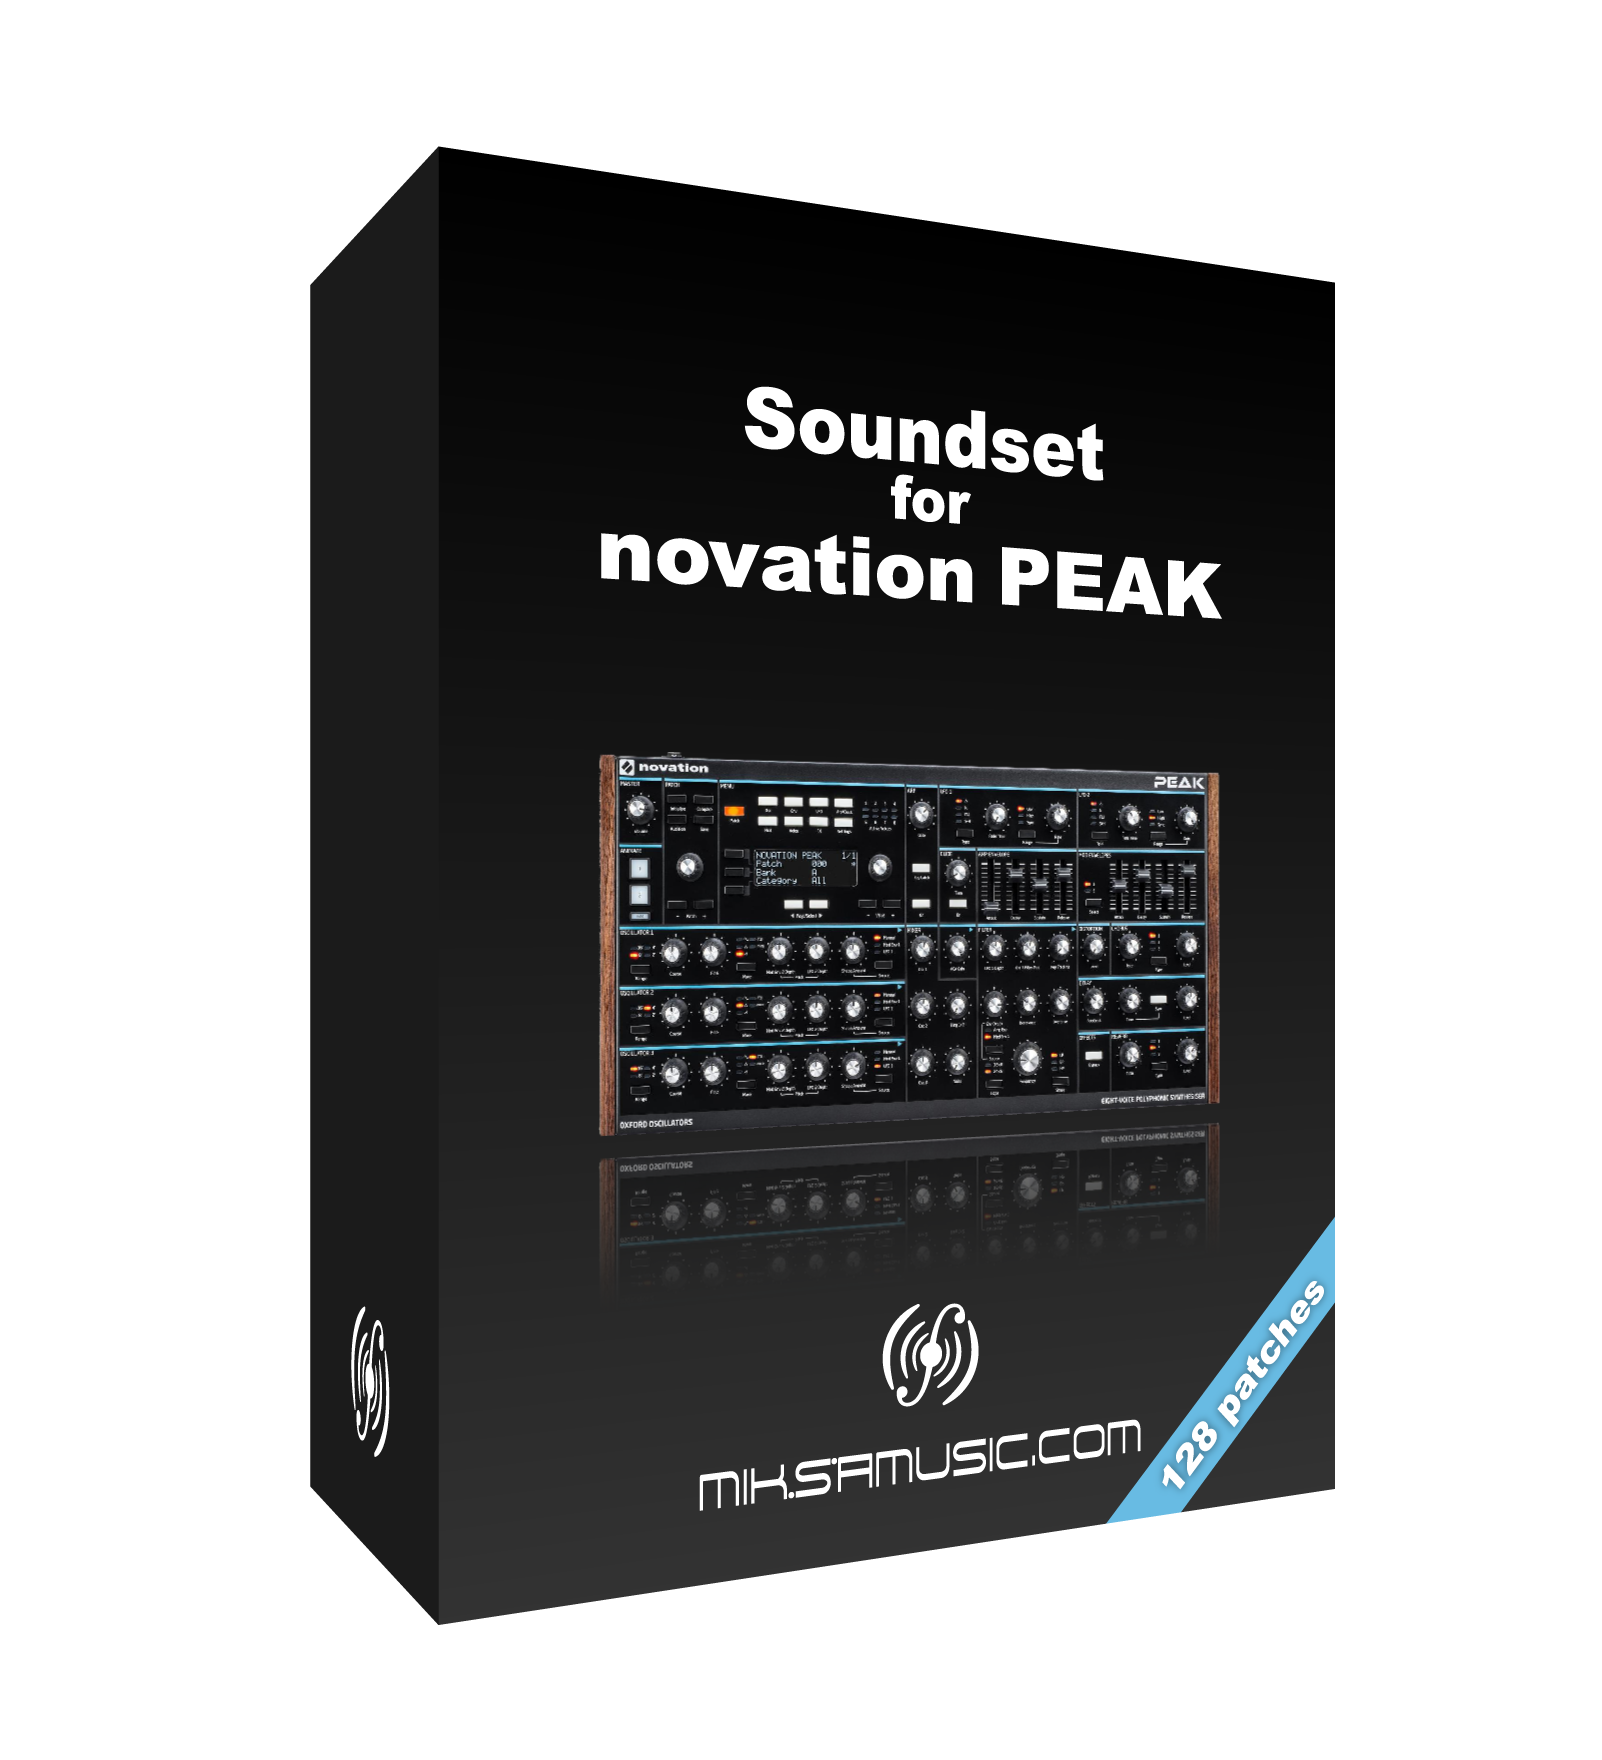 Soundset for Novation Peak